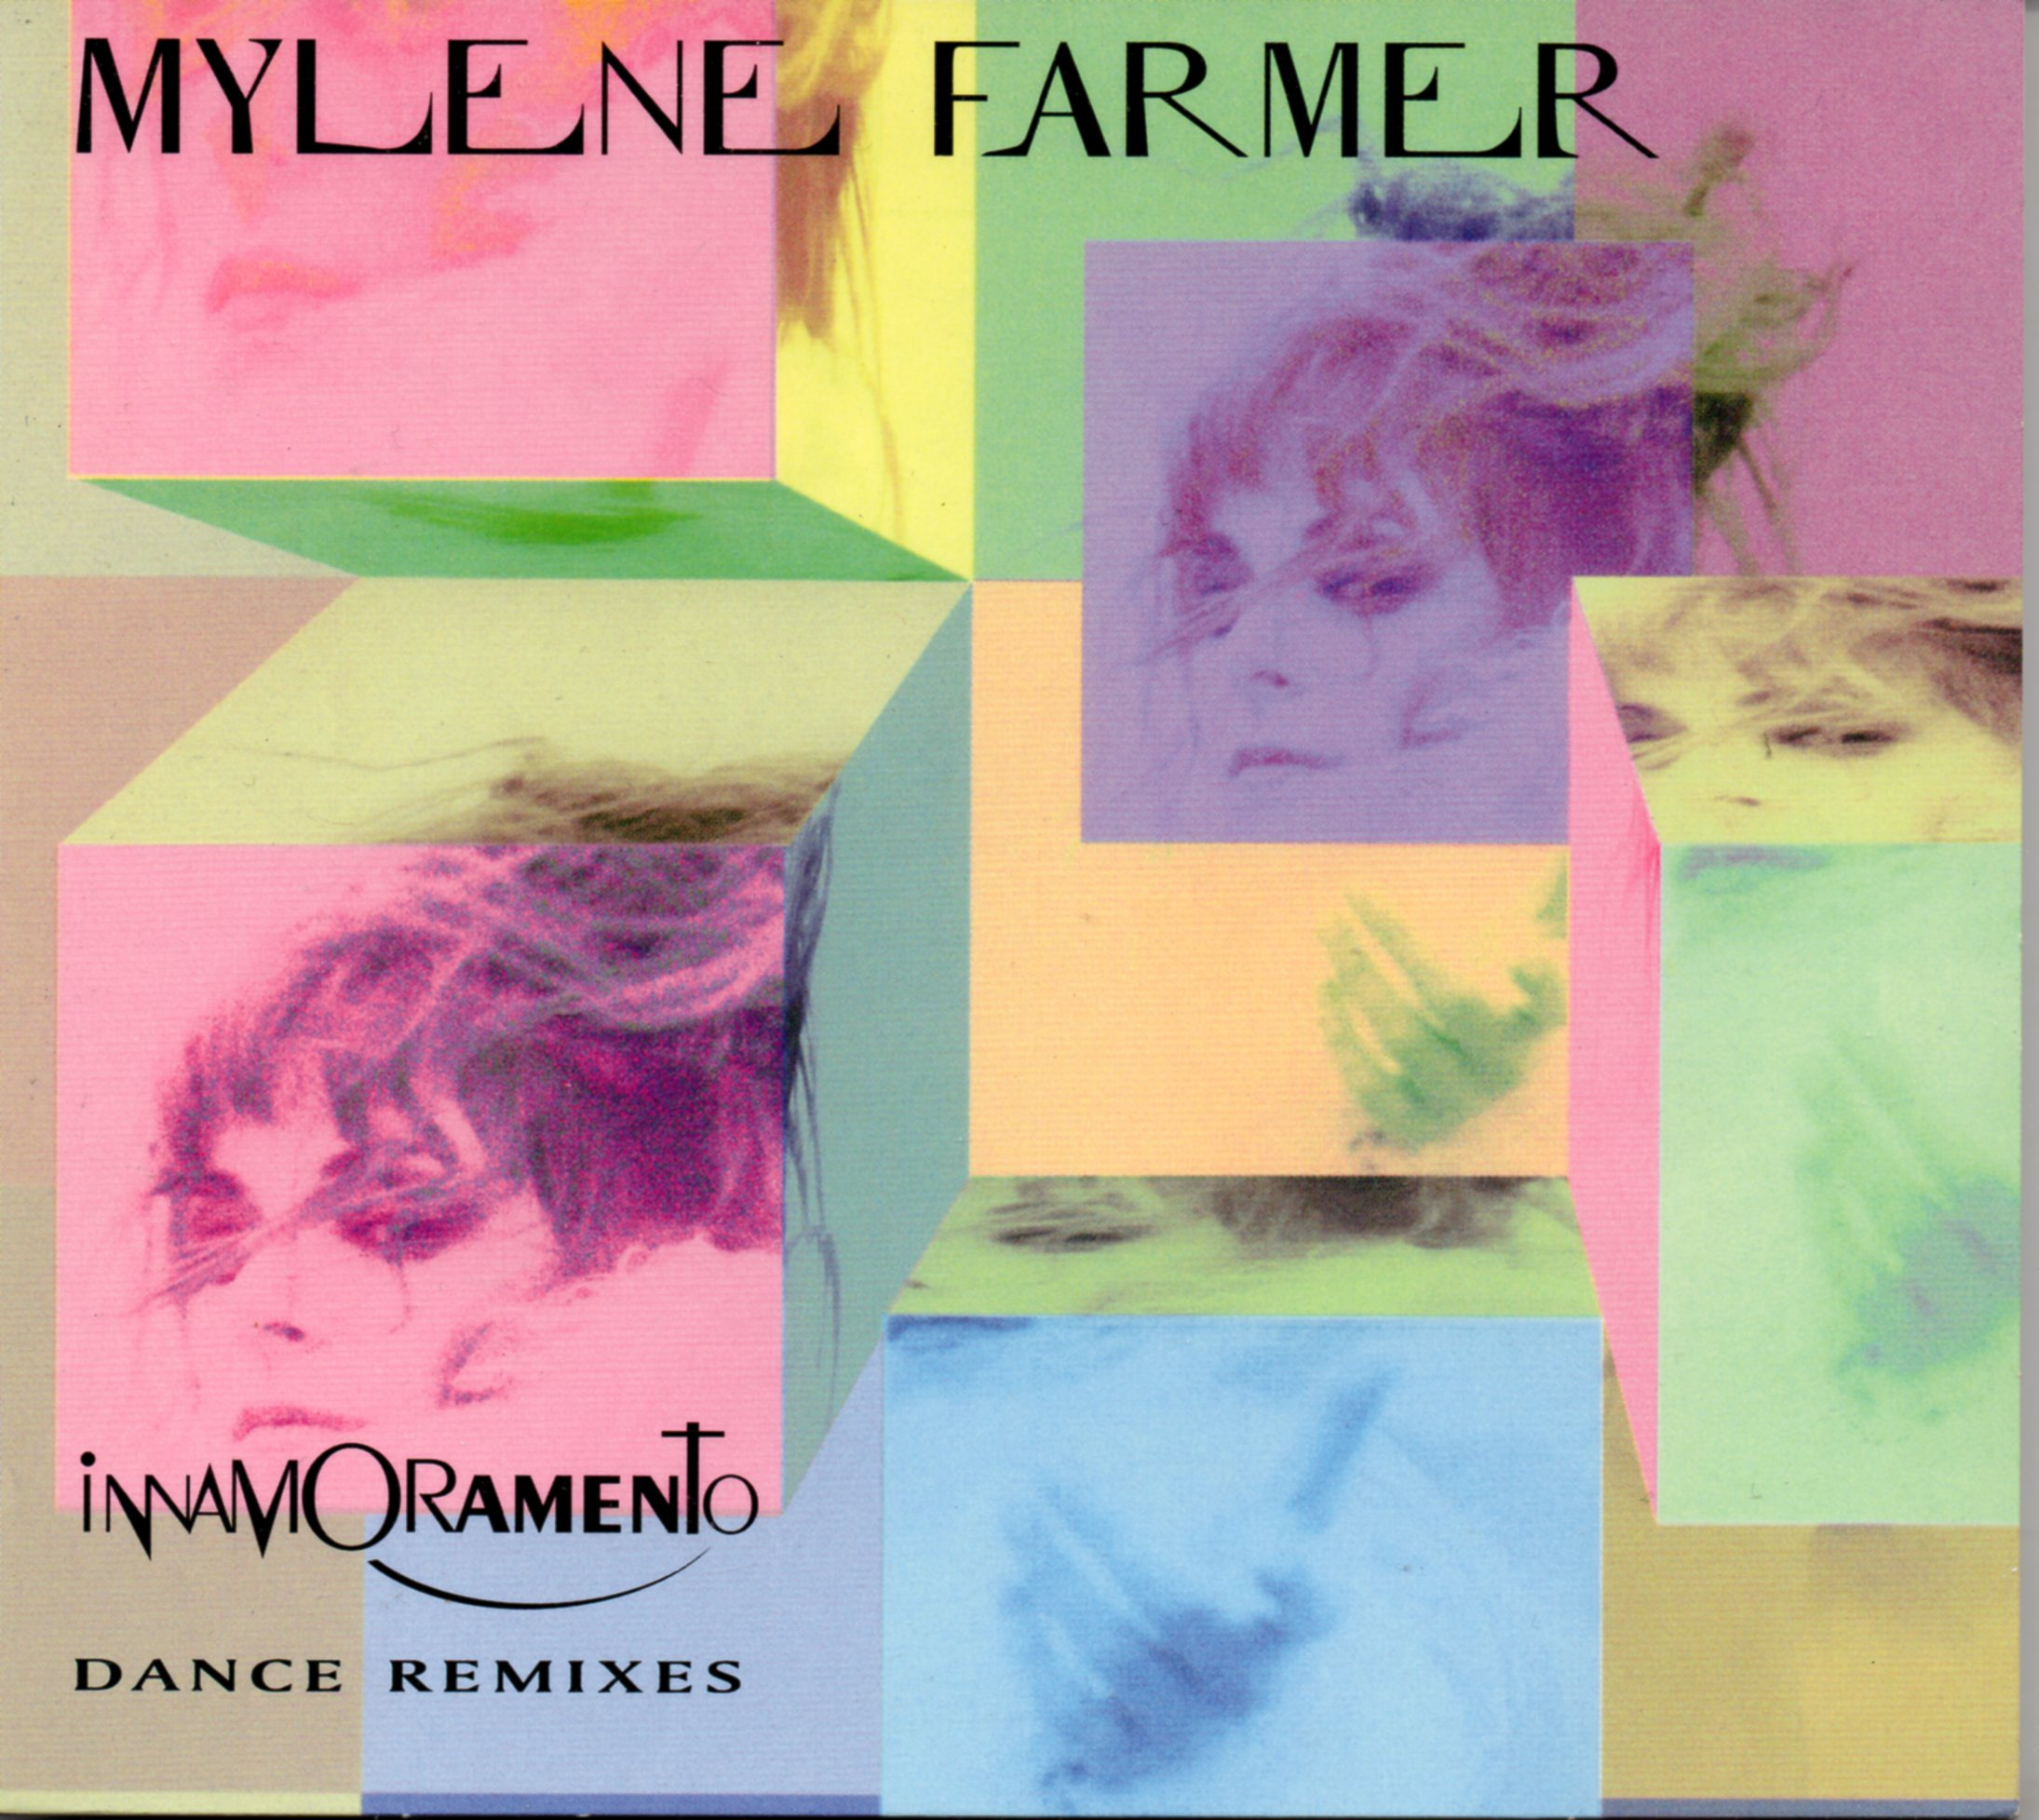 Inamoramento - The Remixes 4-track Digipack - Mylène FARMER